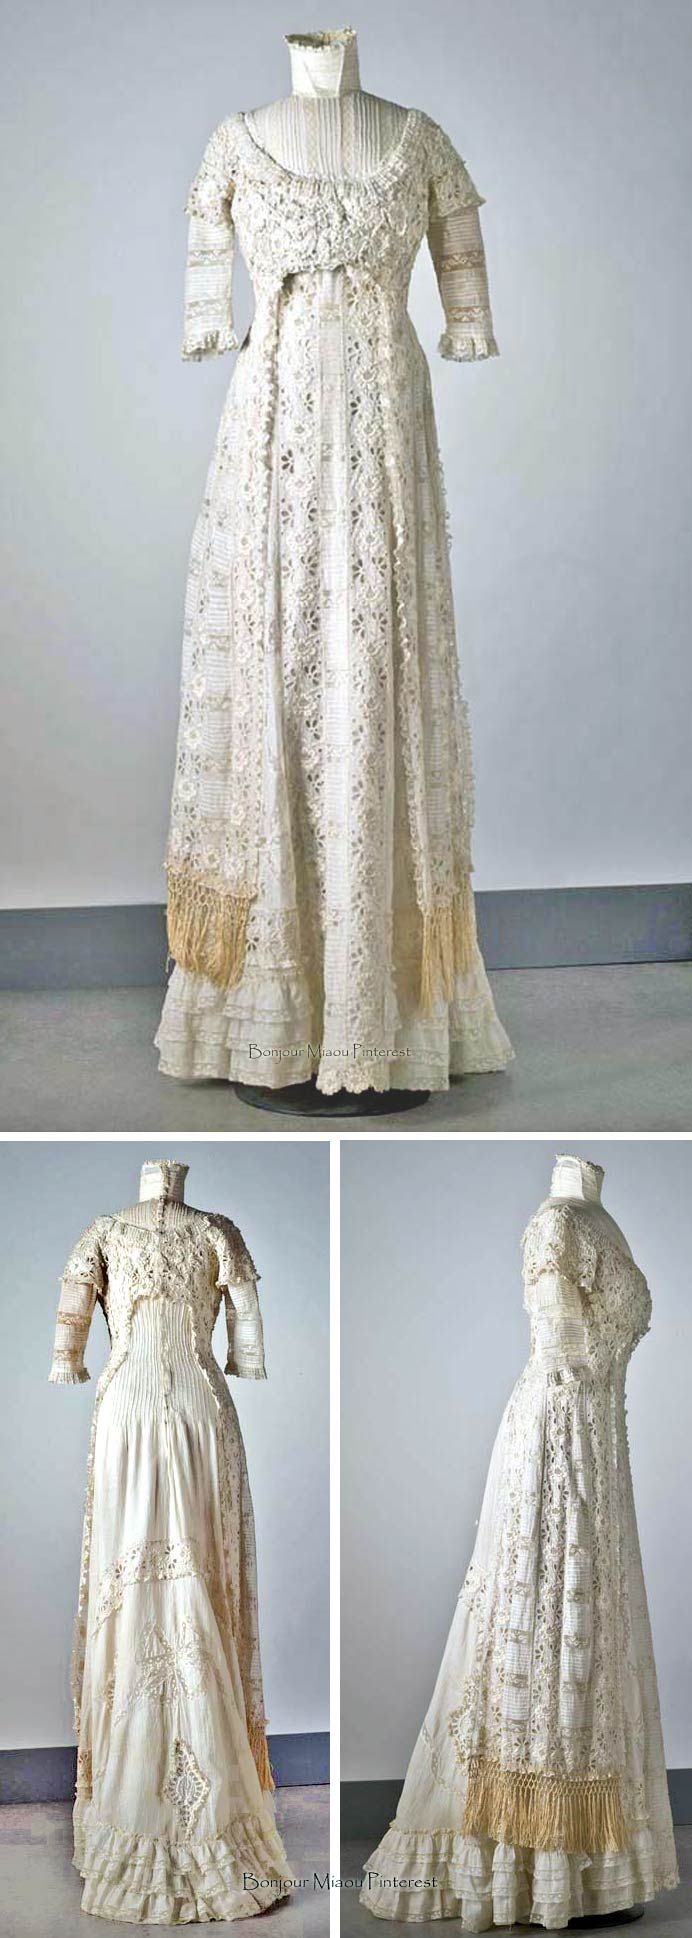 Linen and lace, ca. 1905. Nordic Museum